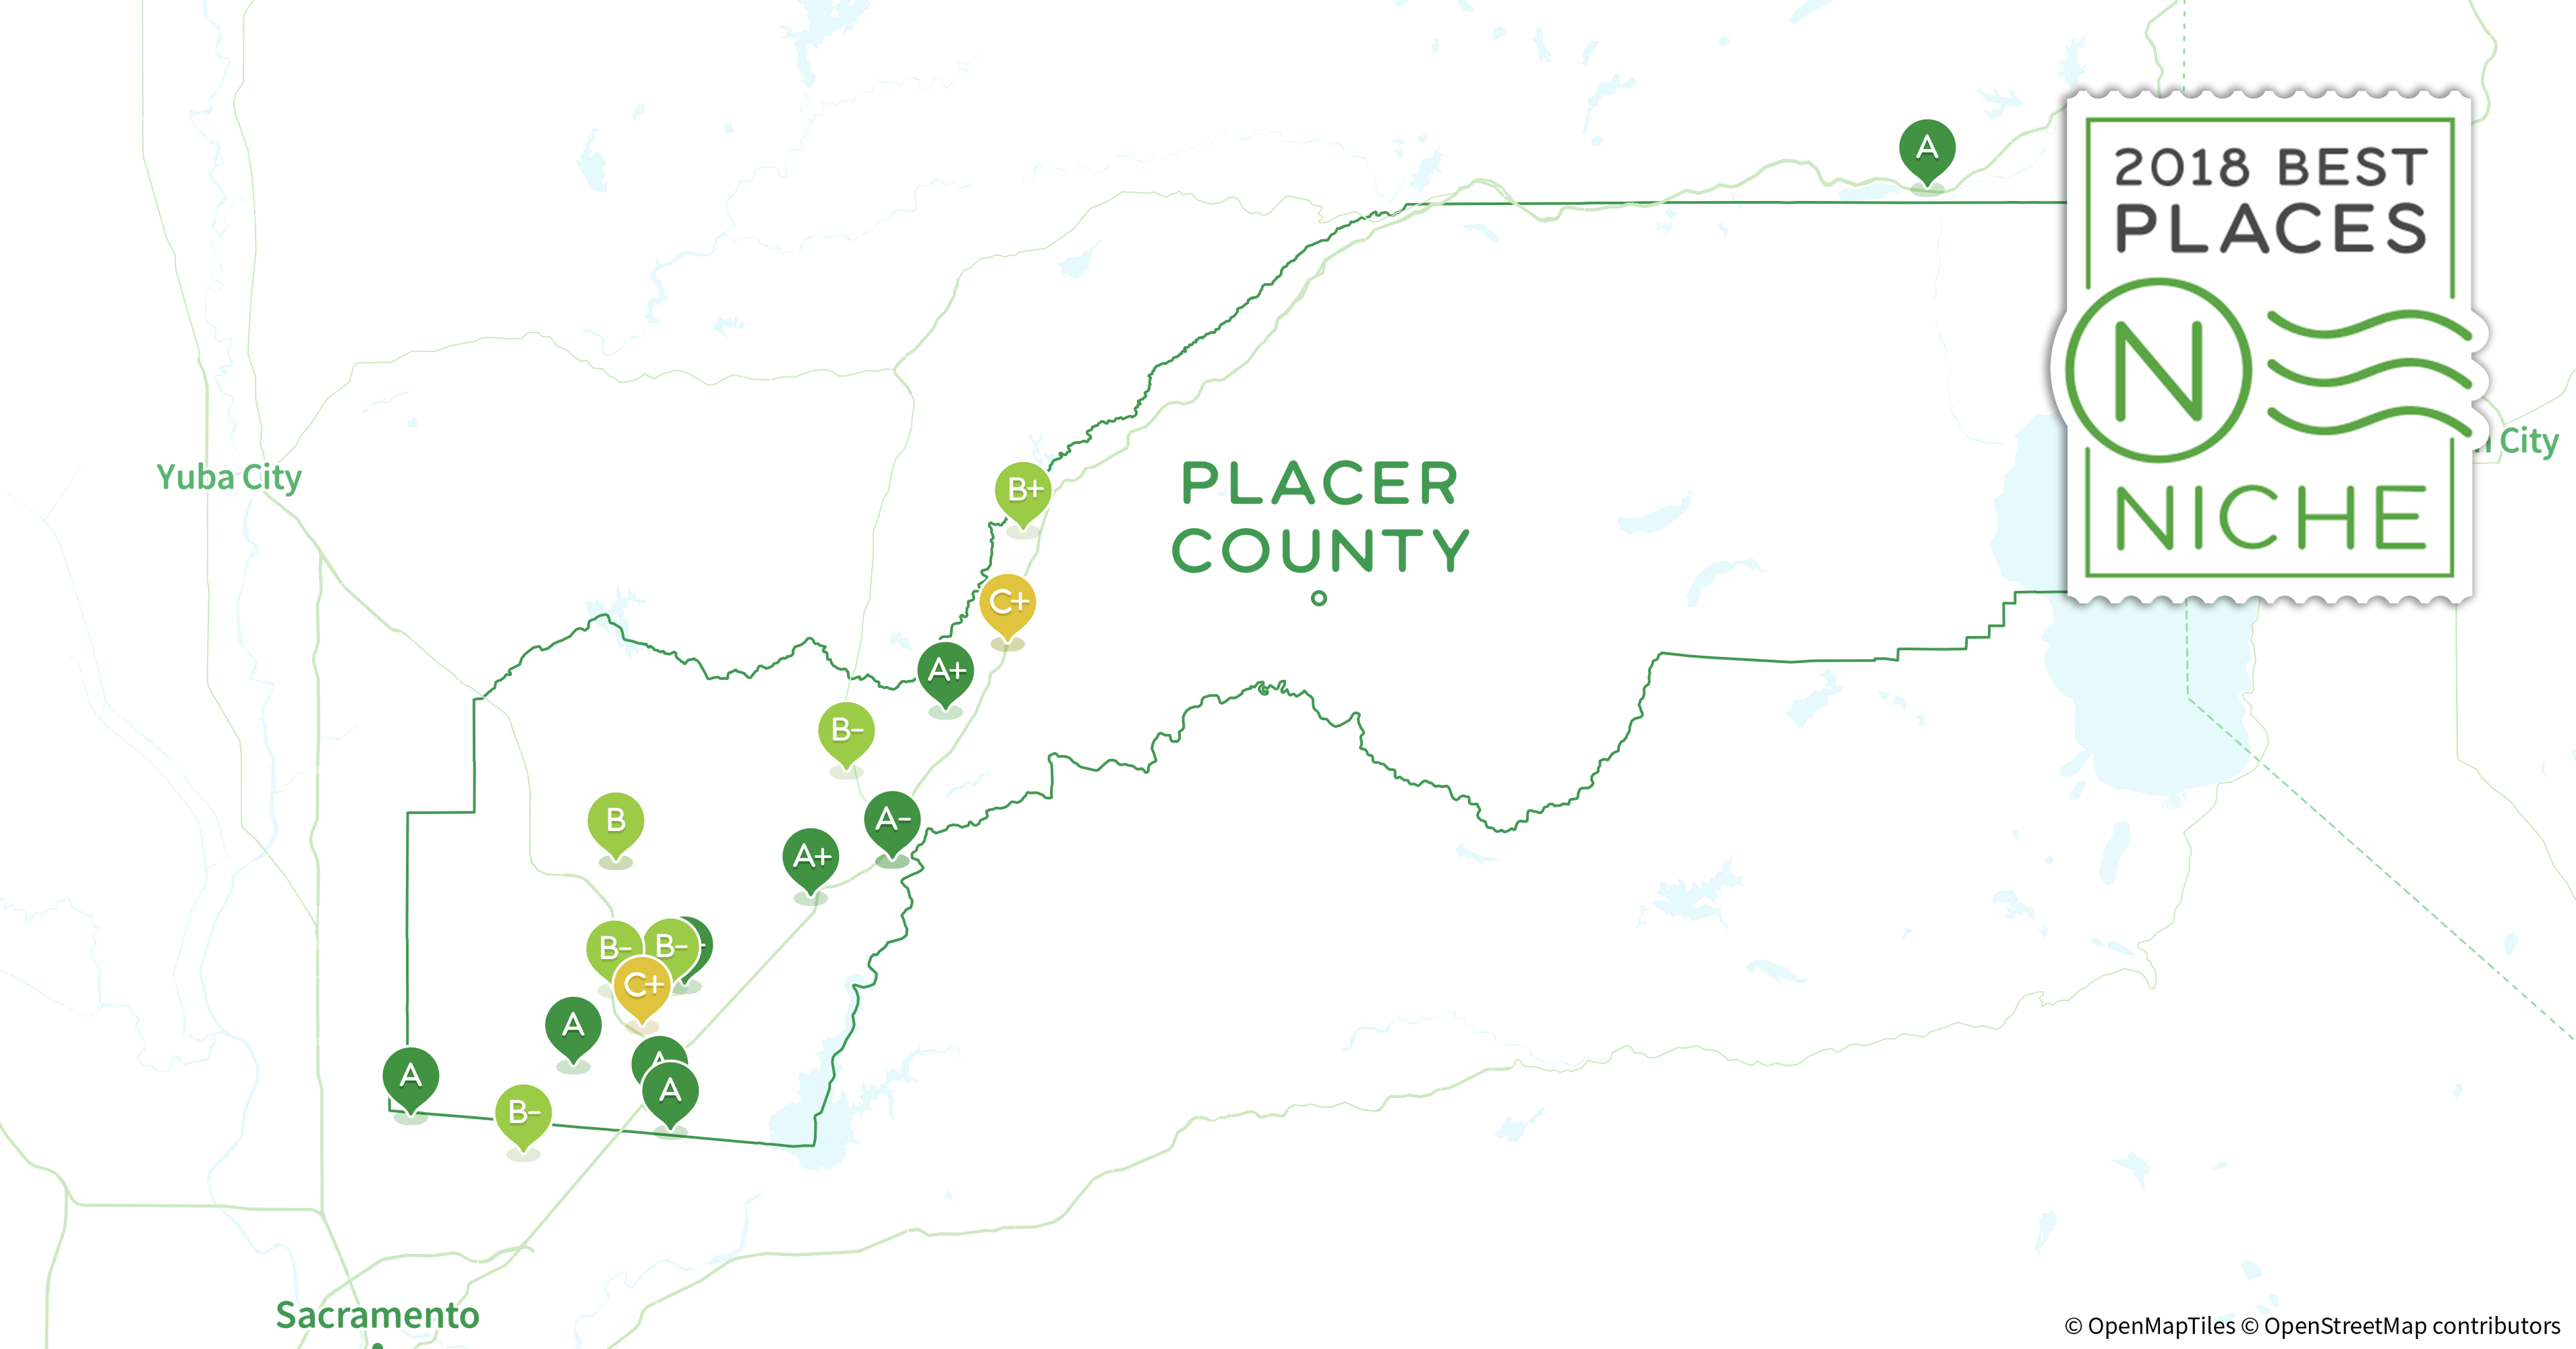 2018 Best Places to Live in Placer County, CA - Niche